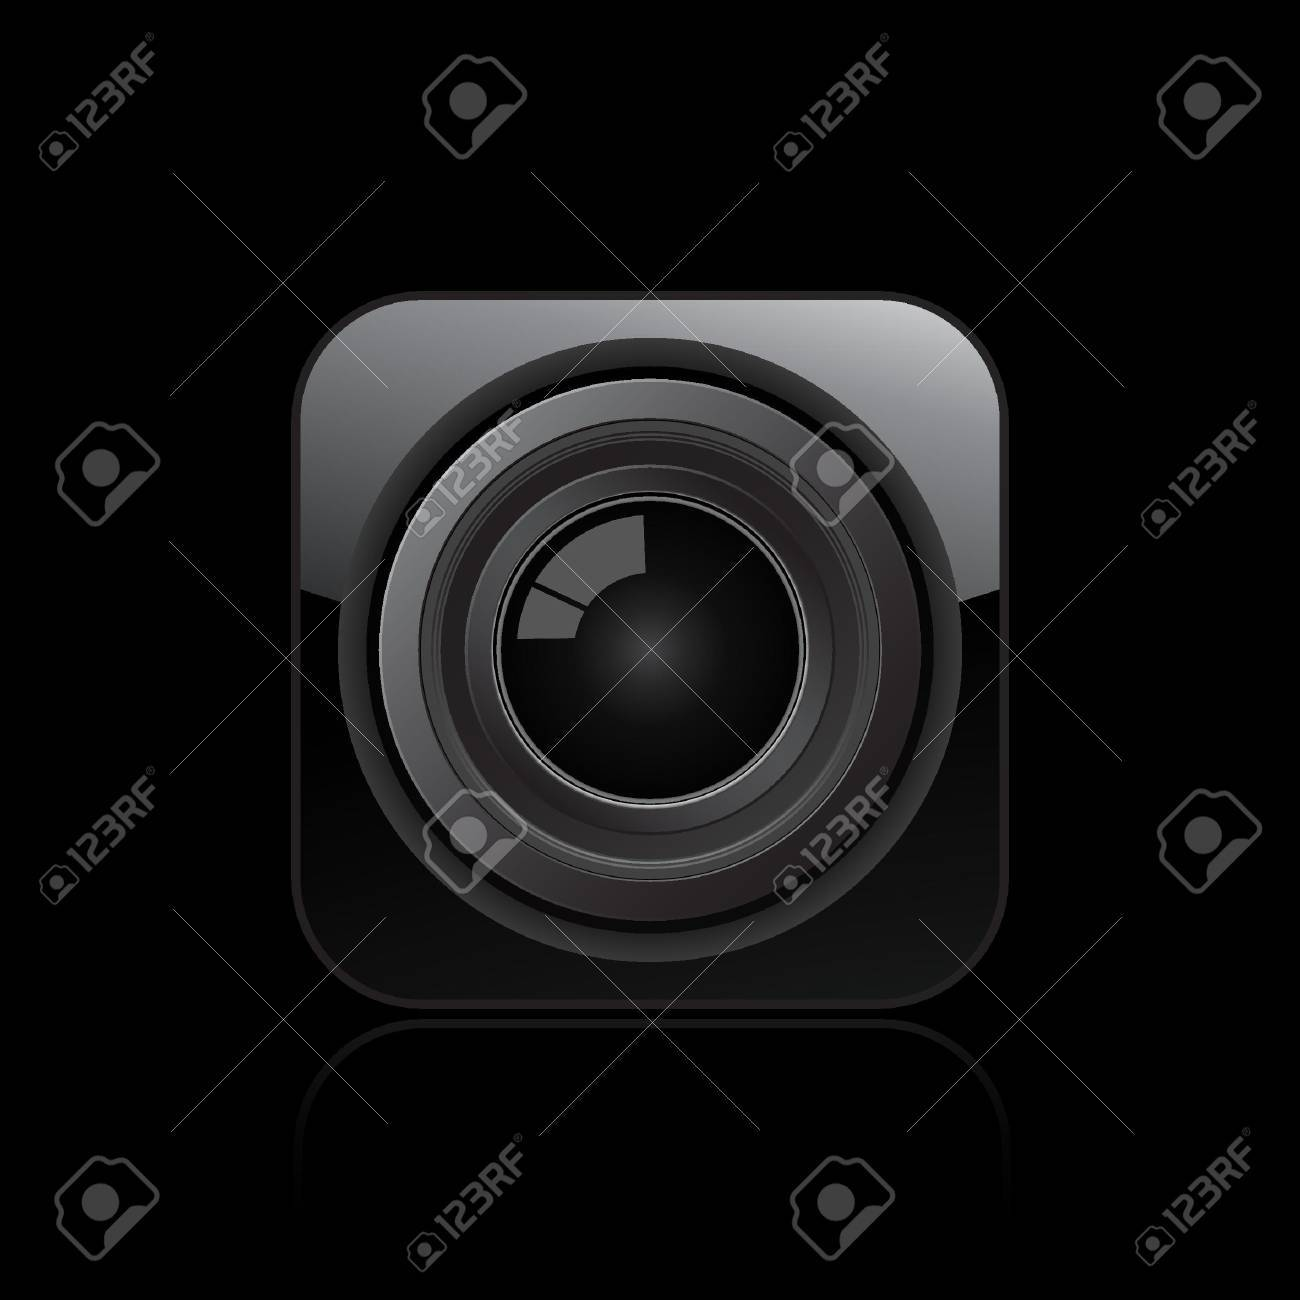 Vector illustration of single isolated camera lens icon Stock Vector - 12121476